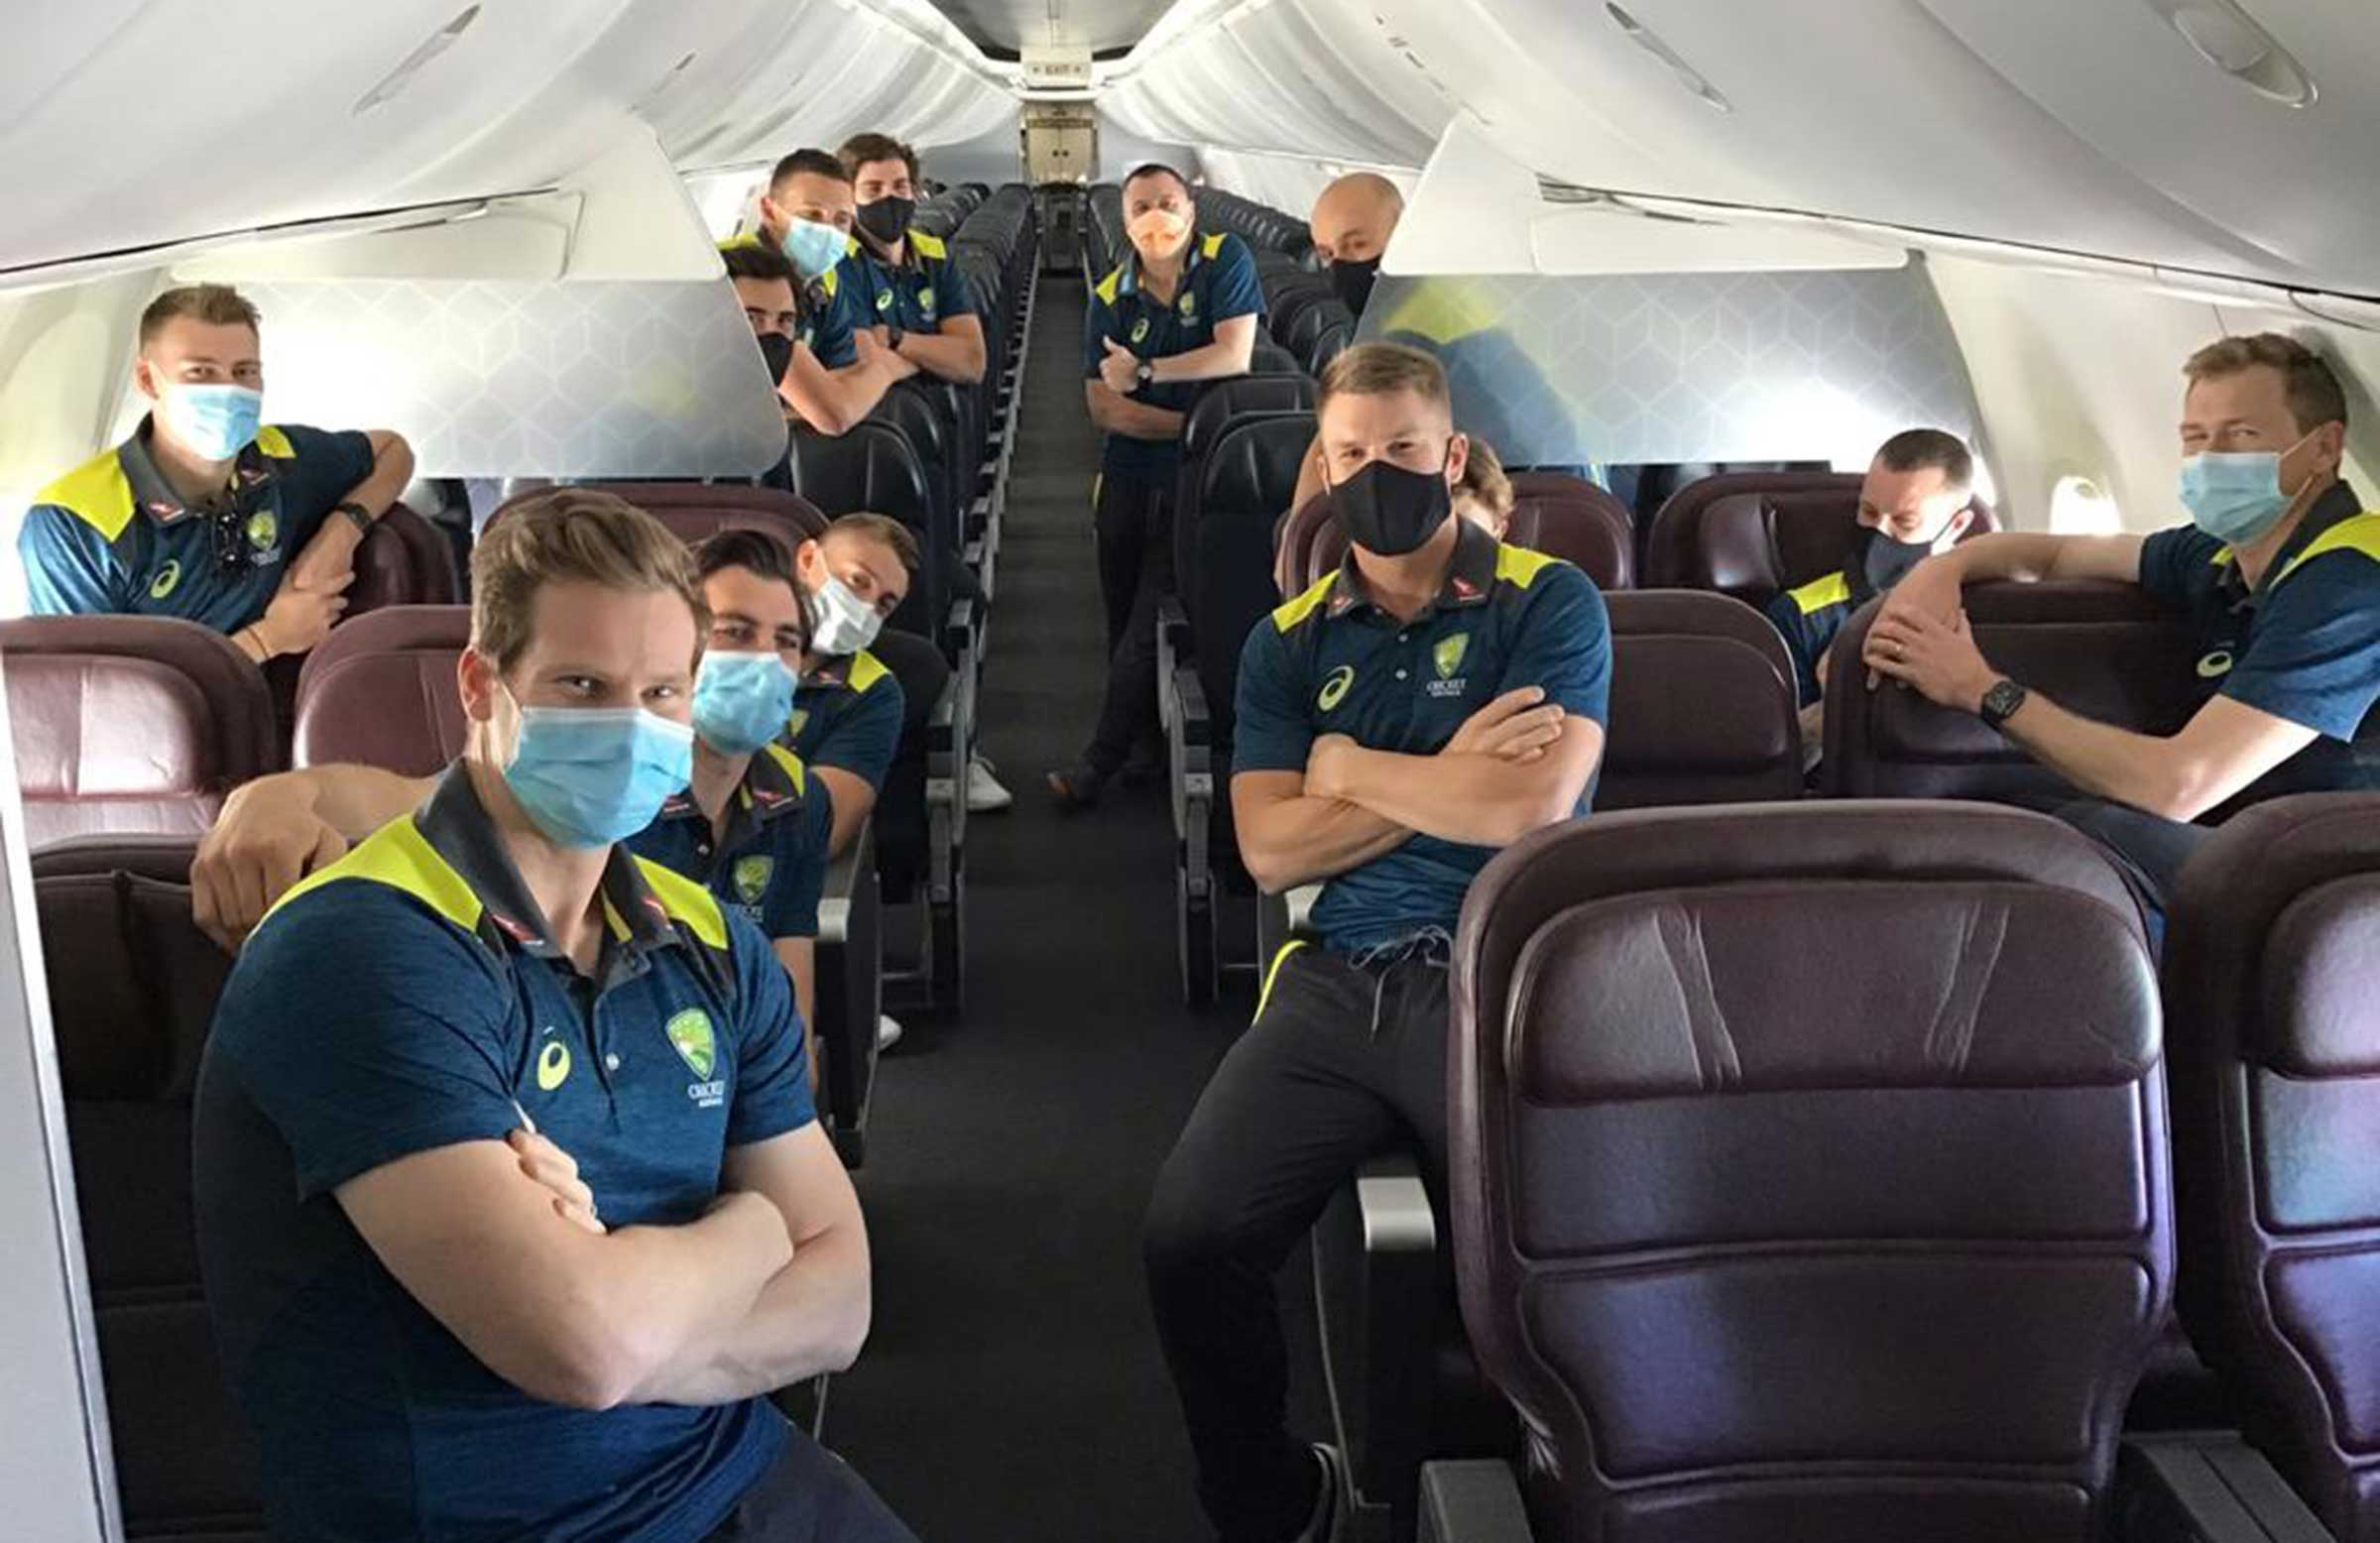 Australia on board their flight to the United Kingdom // Supplied